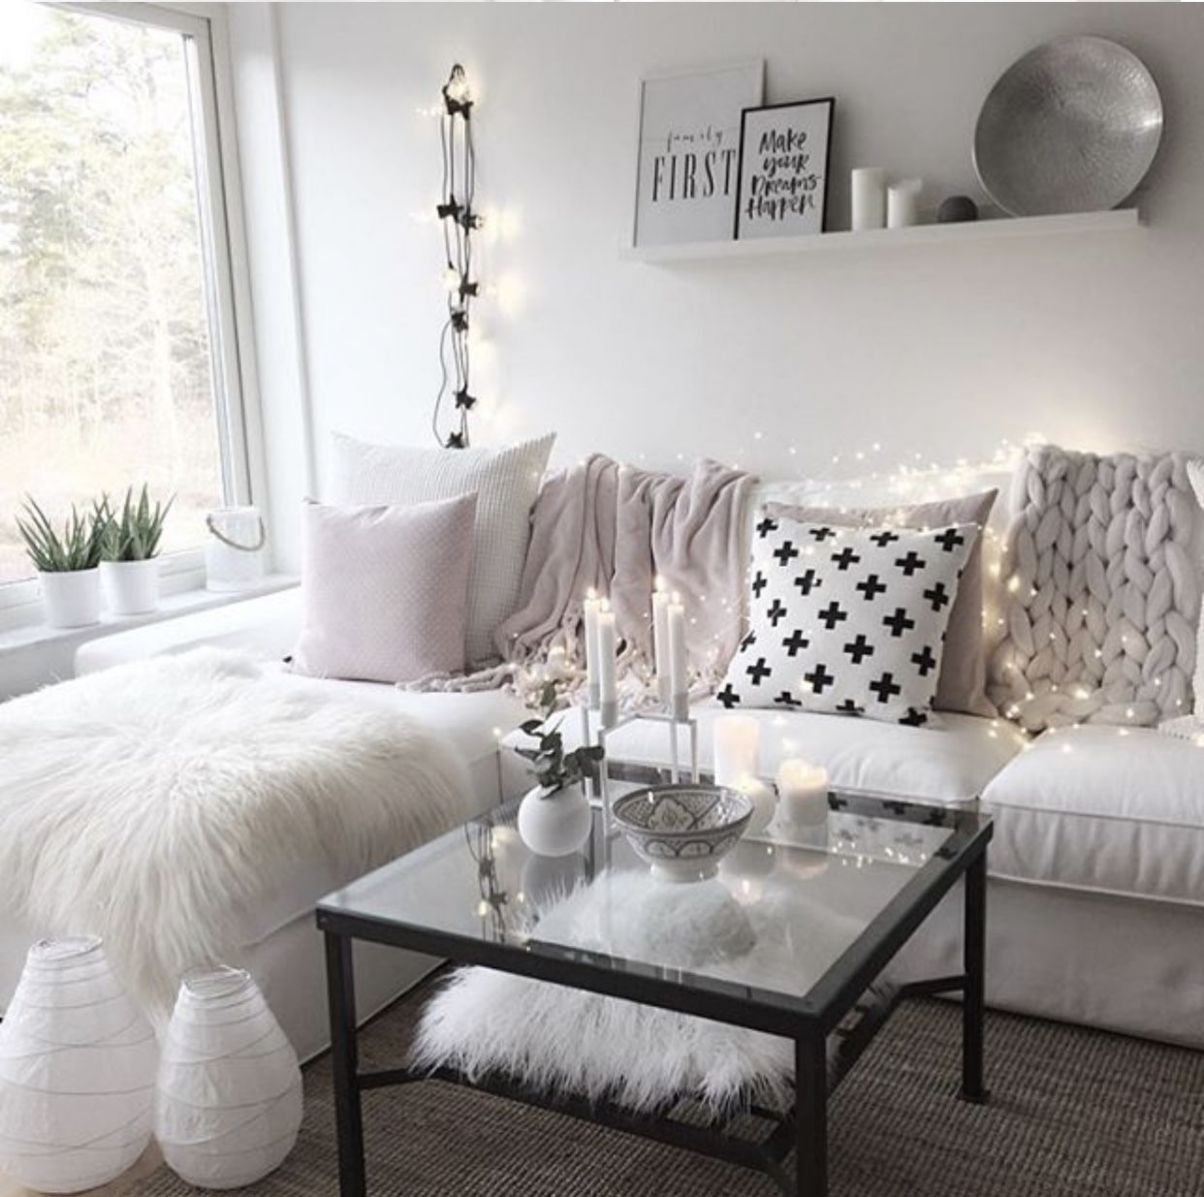 Girly living room/apartment idea (With images) | Girly living room ...